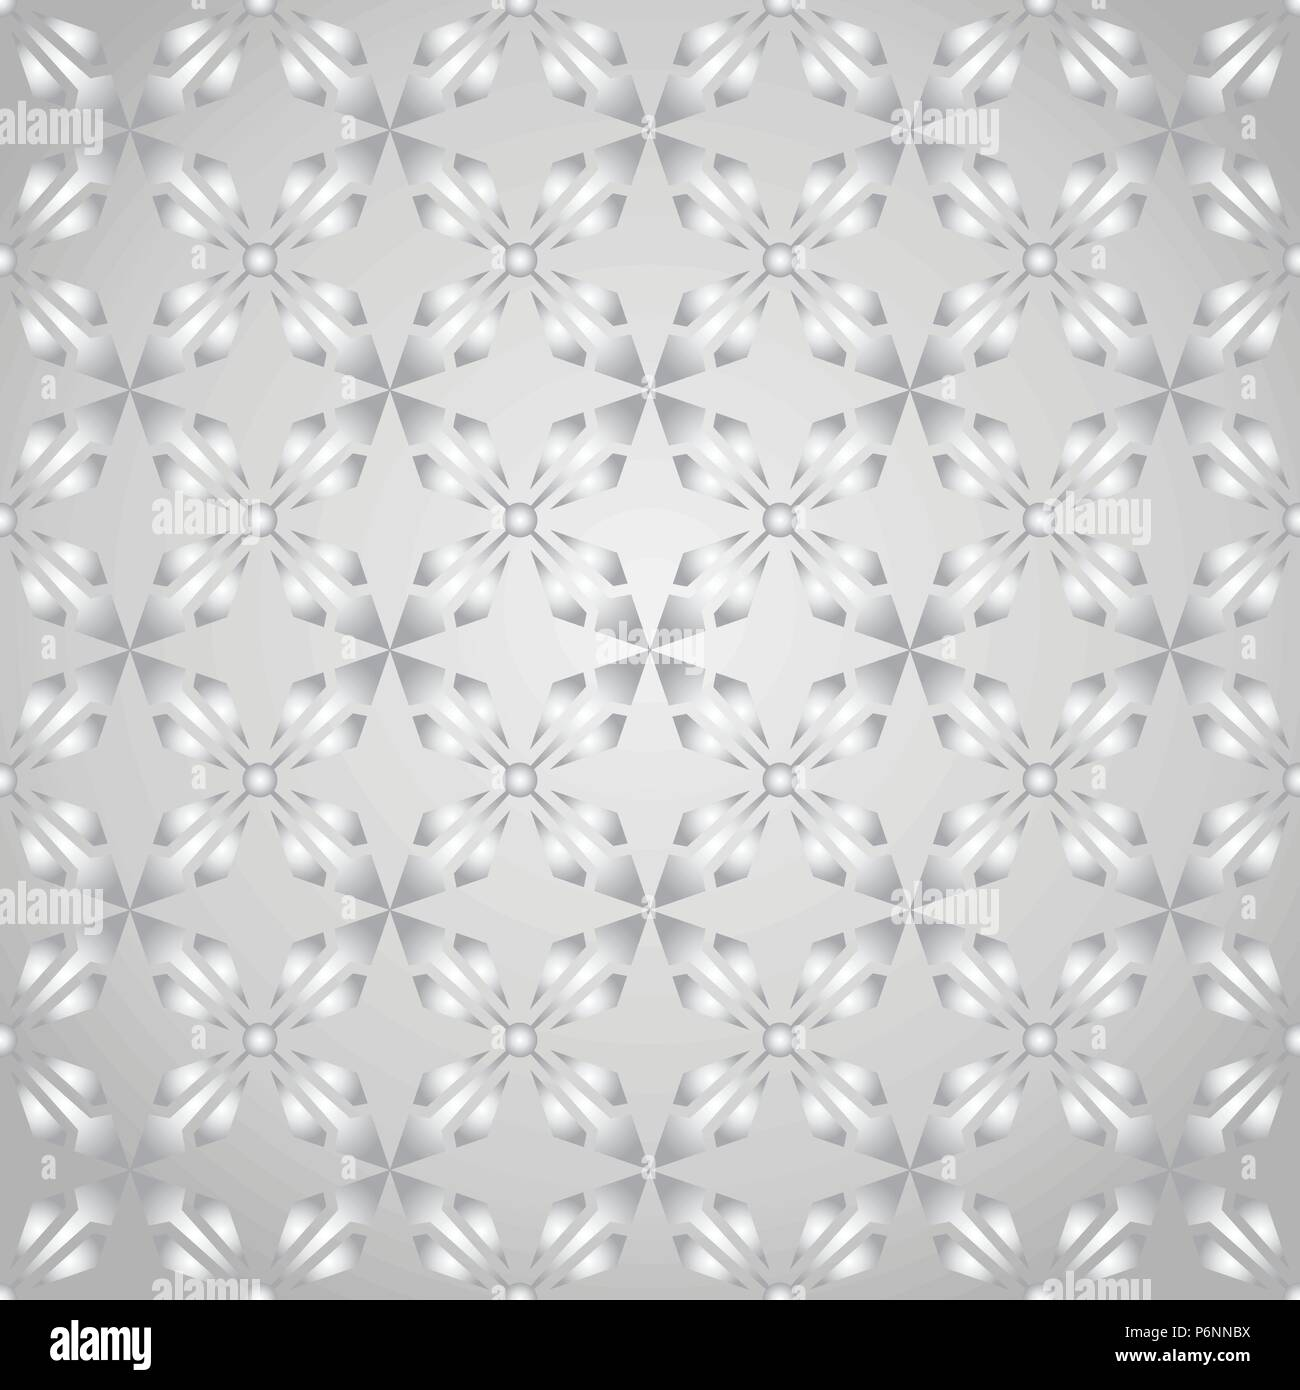 Silver abstract arrow and circle in rectangle shape seamless pattern. Modern pattern for graphic or abstract design. - Stock Vector